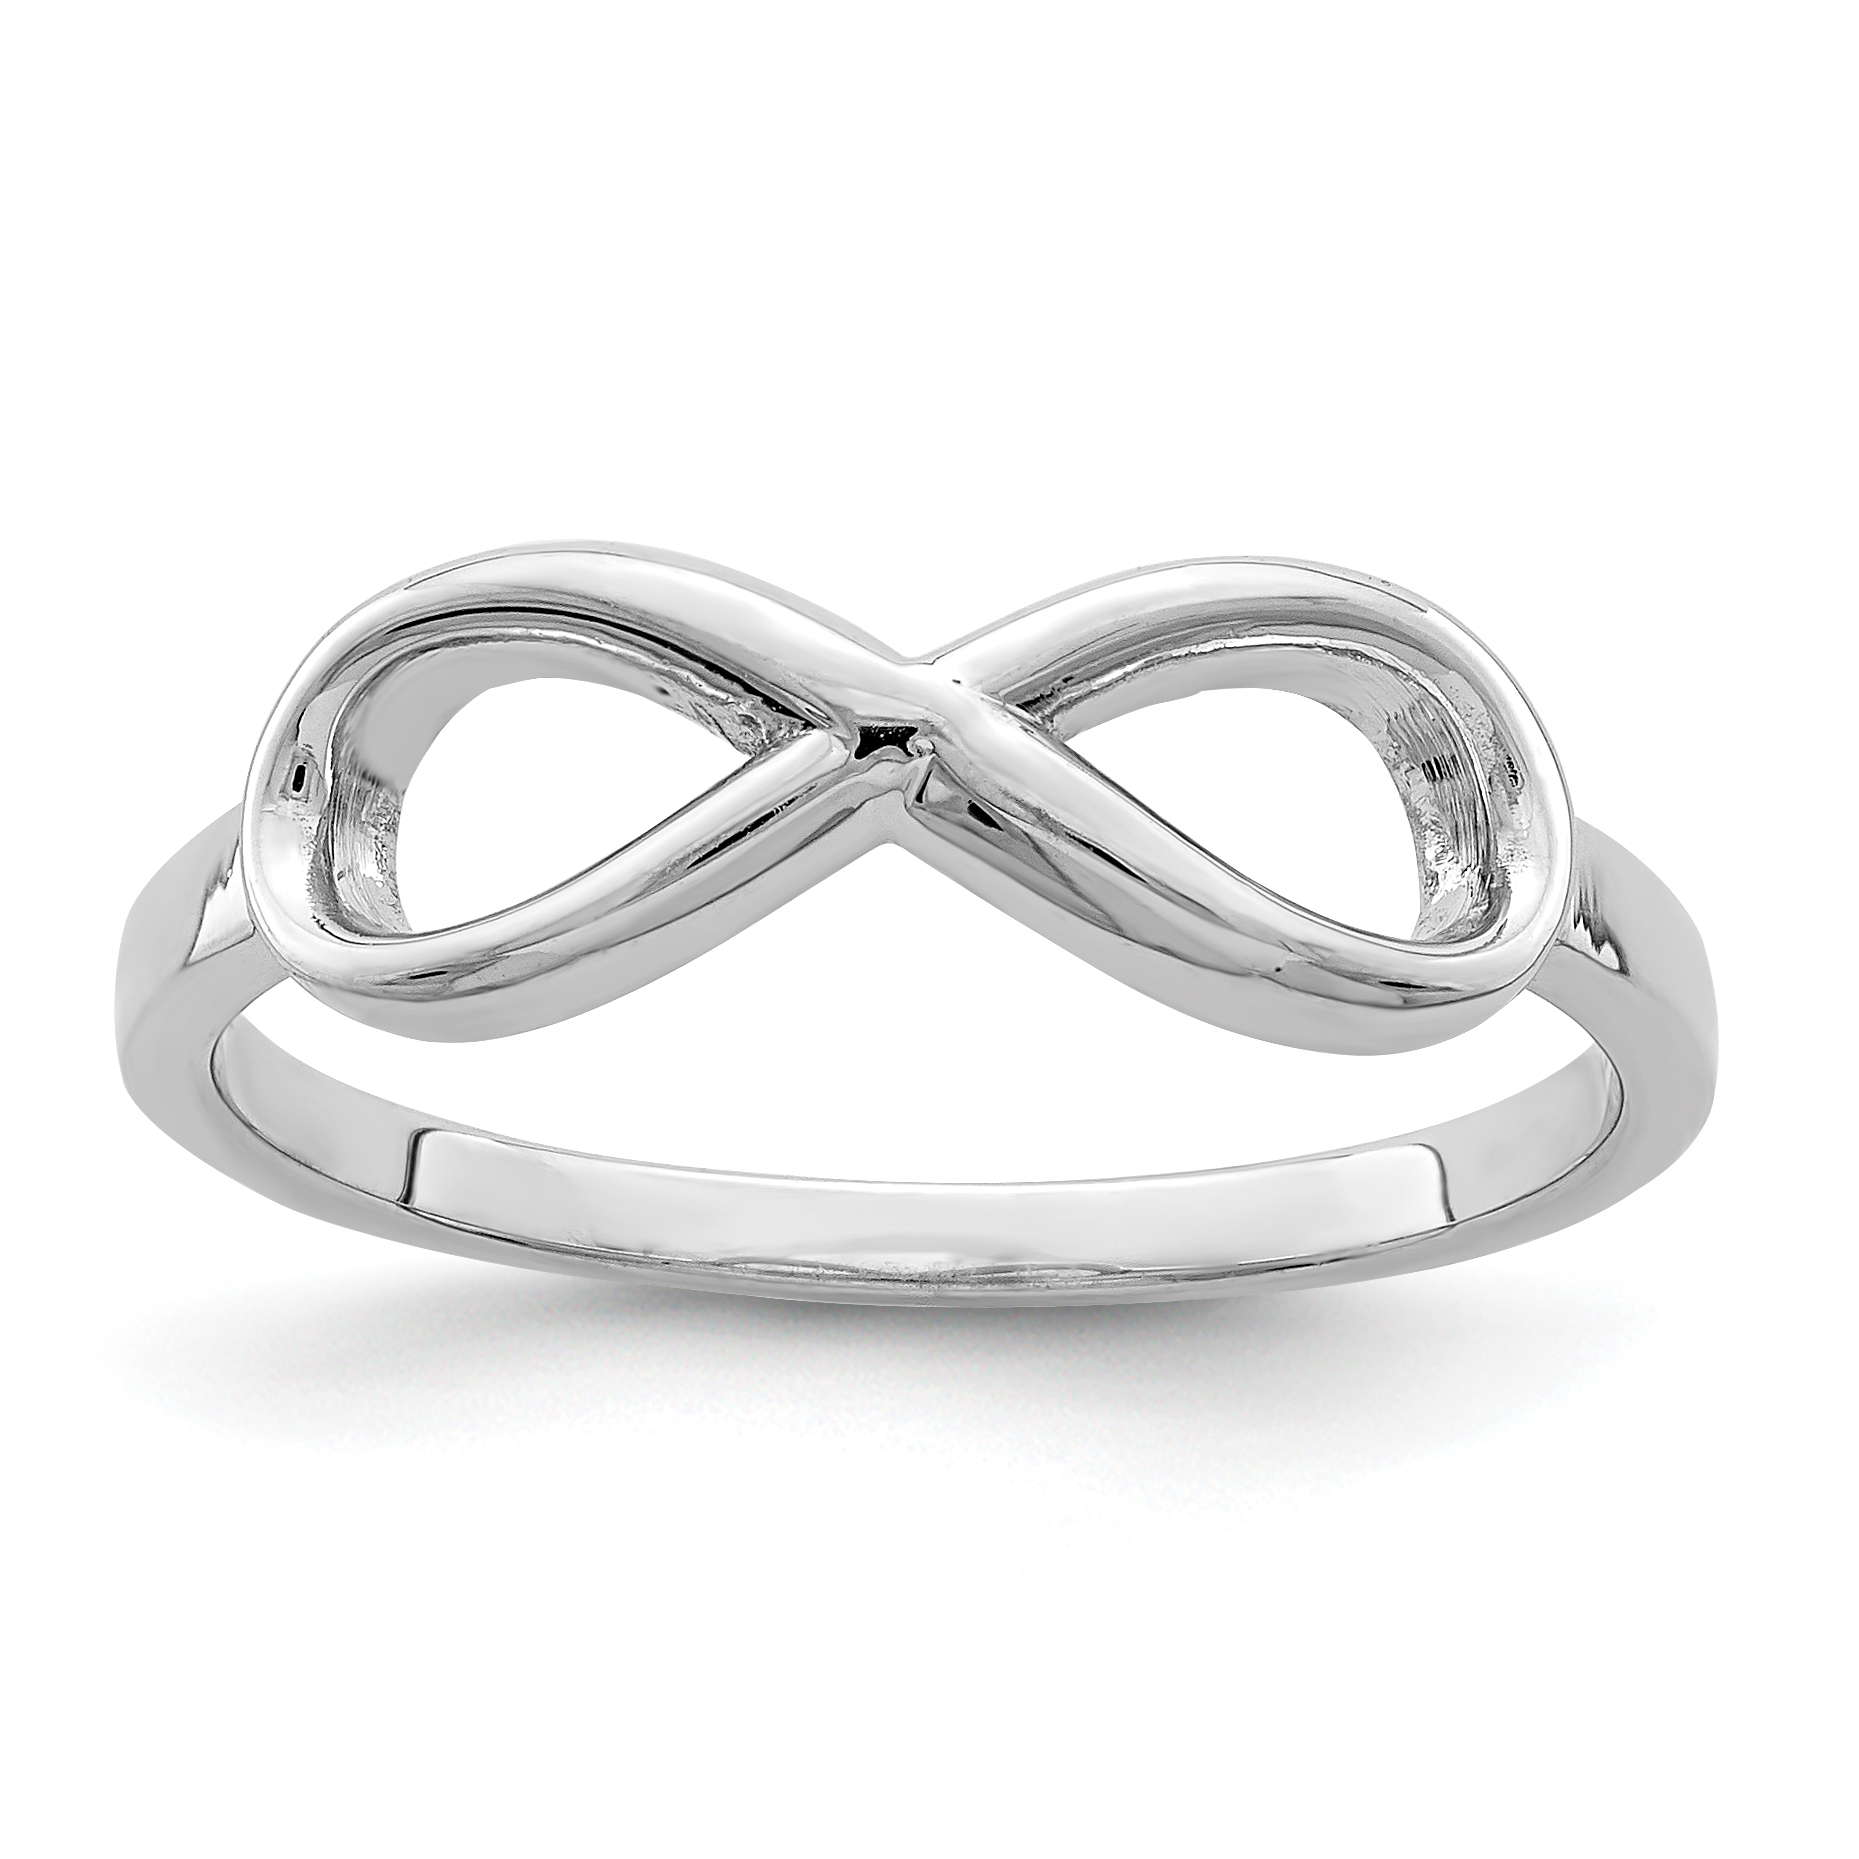 infinity ring jewelry tiffany in infinitynarrow rings sterling usm band ed co m op narrow silver